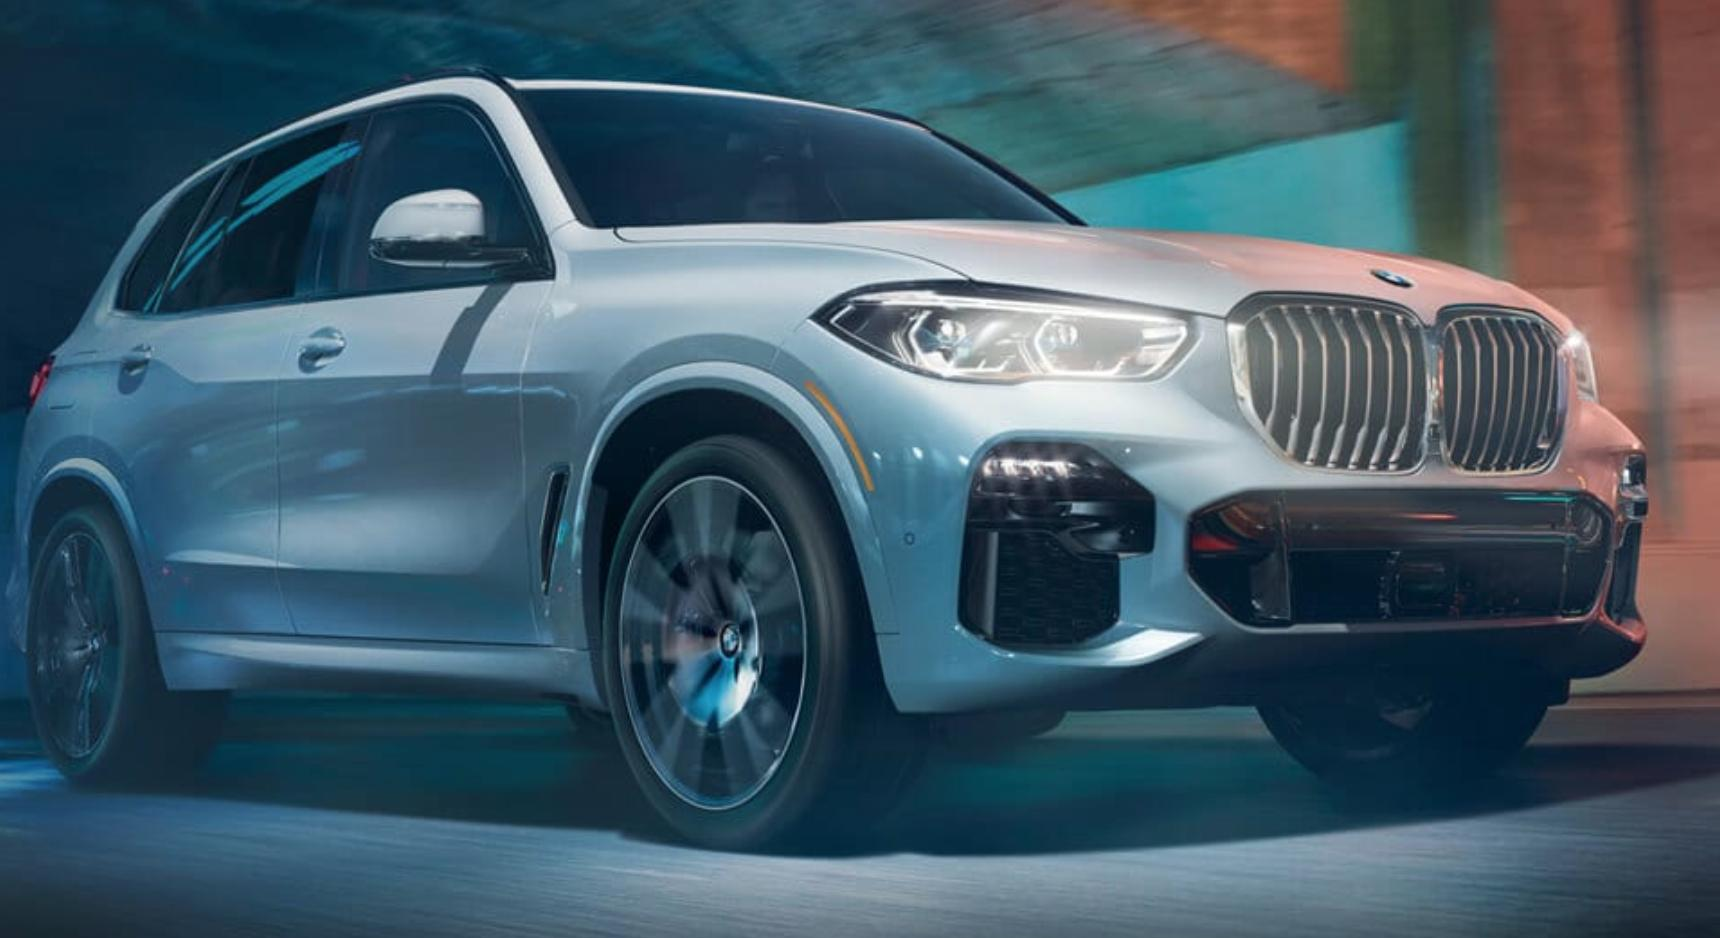 Bmw Hudson Valley On Twitter It Doesn T Take A Car Guru To Know That The 2019 Bmw X5 Is The Leader Of Its Class Https T Co Vrmsih4to6